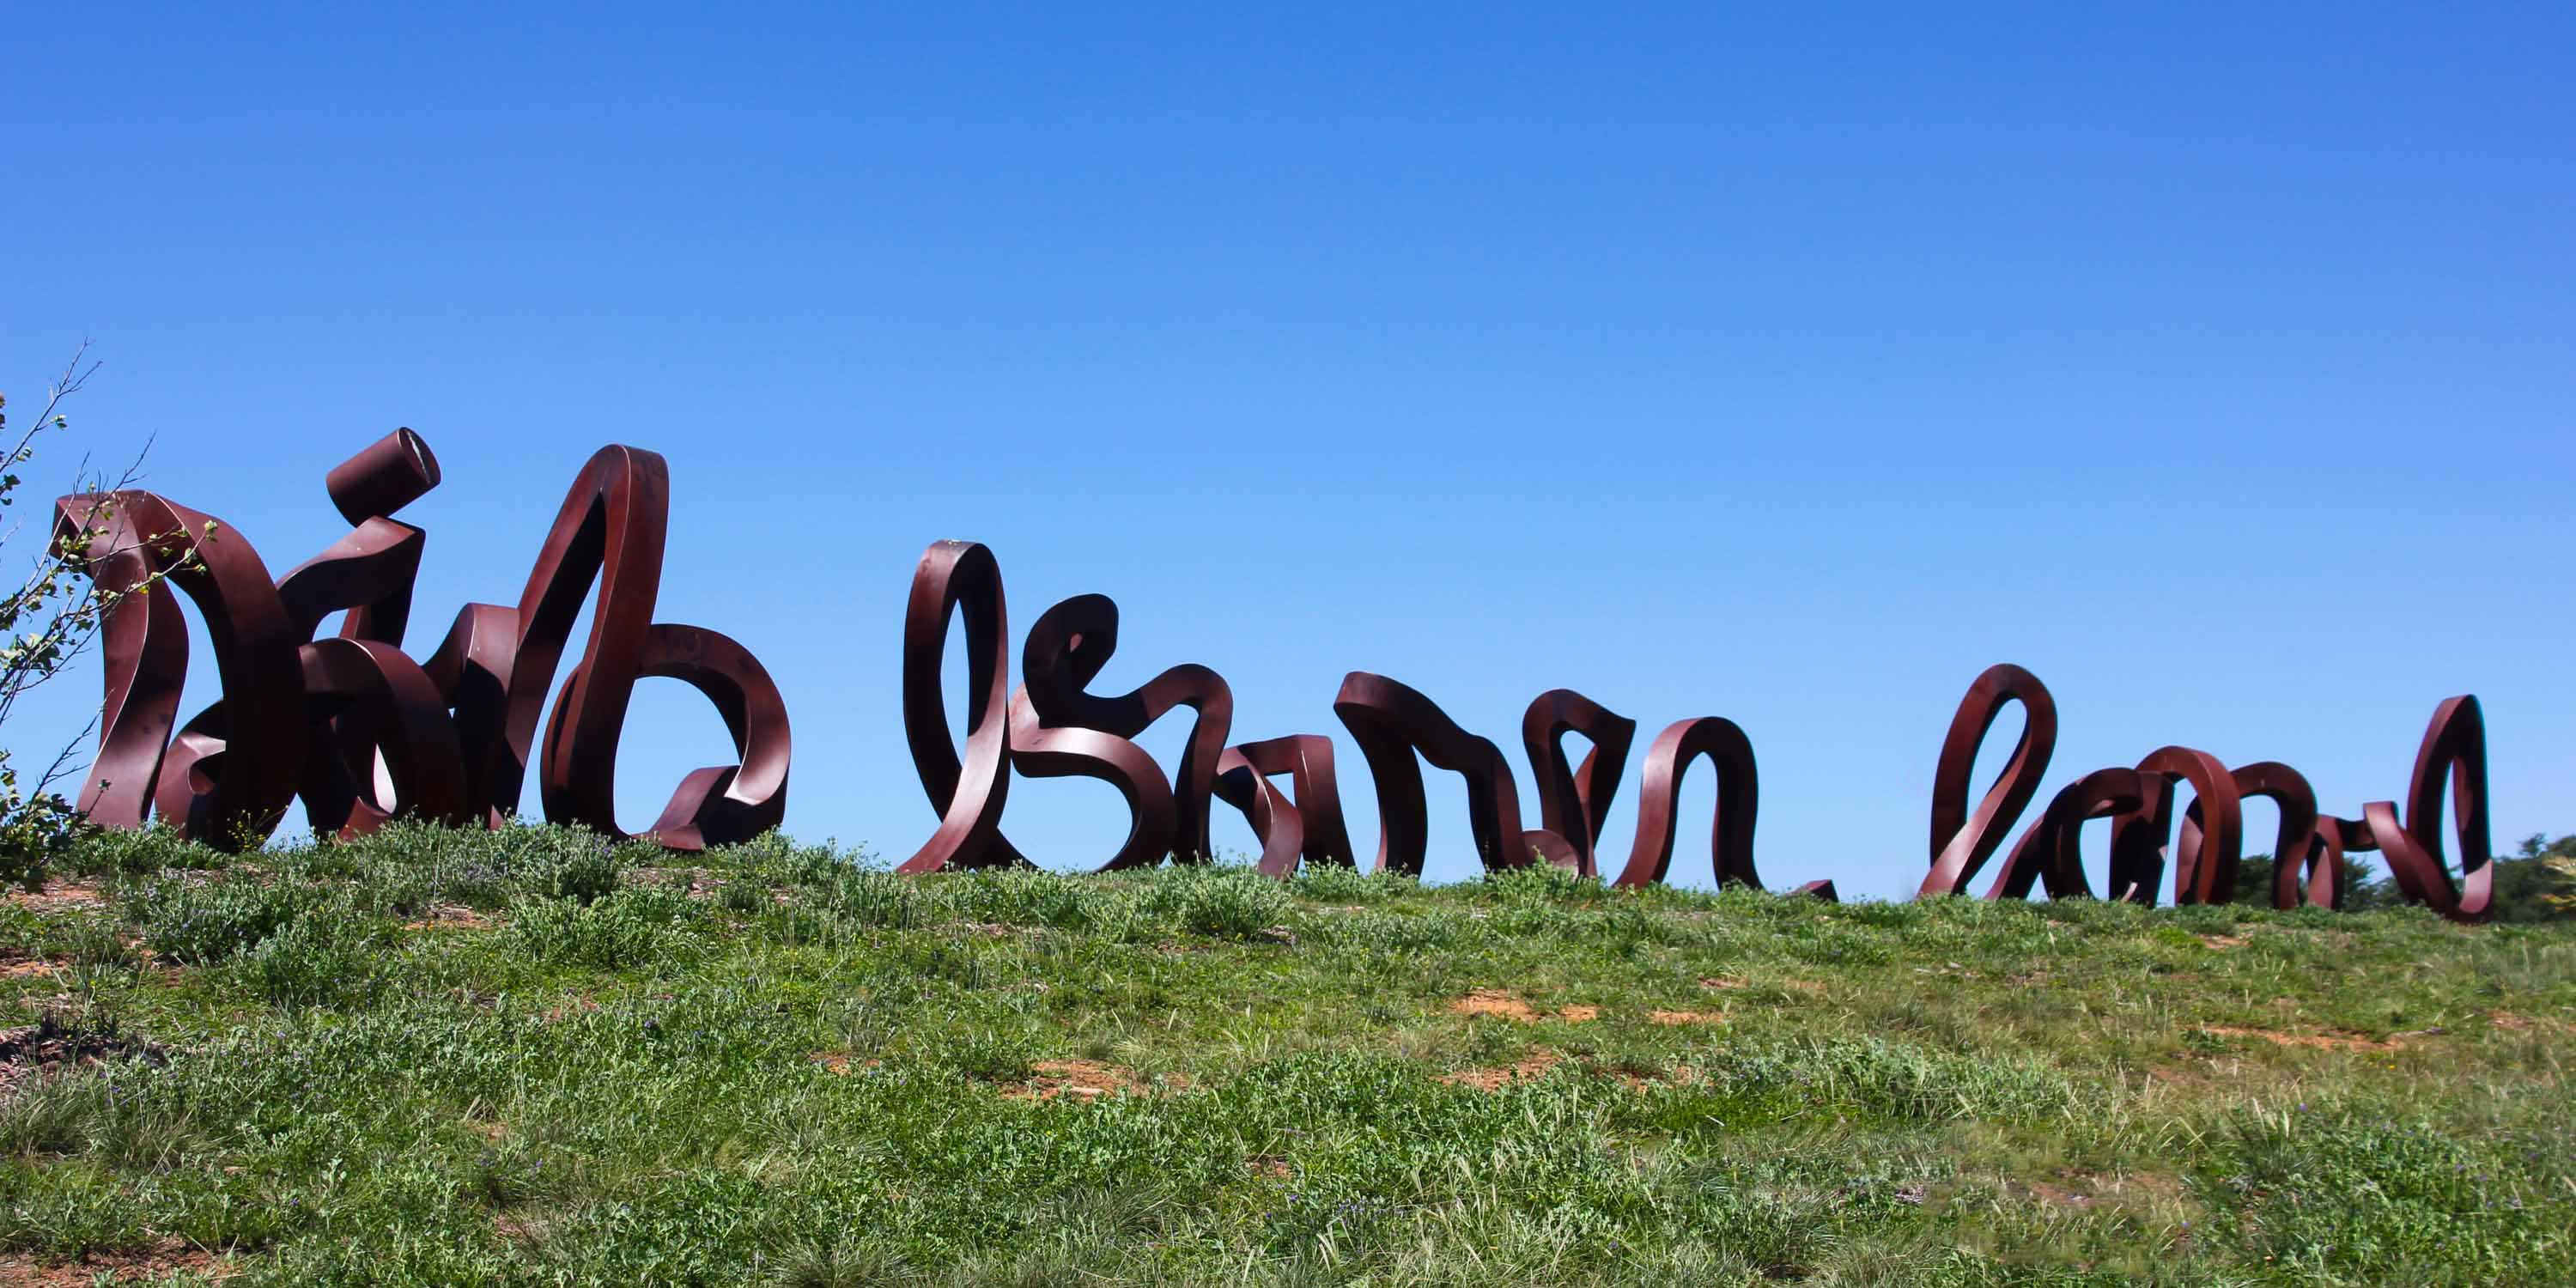 Wide Brown Land sculpture at the National Arboretum Canberra